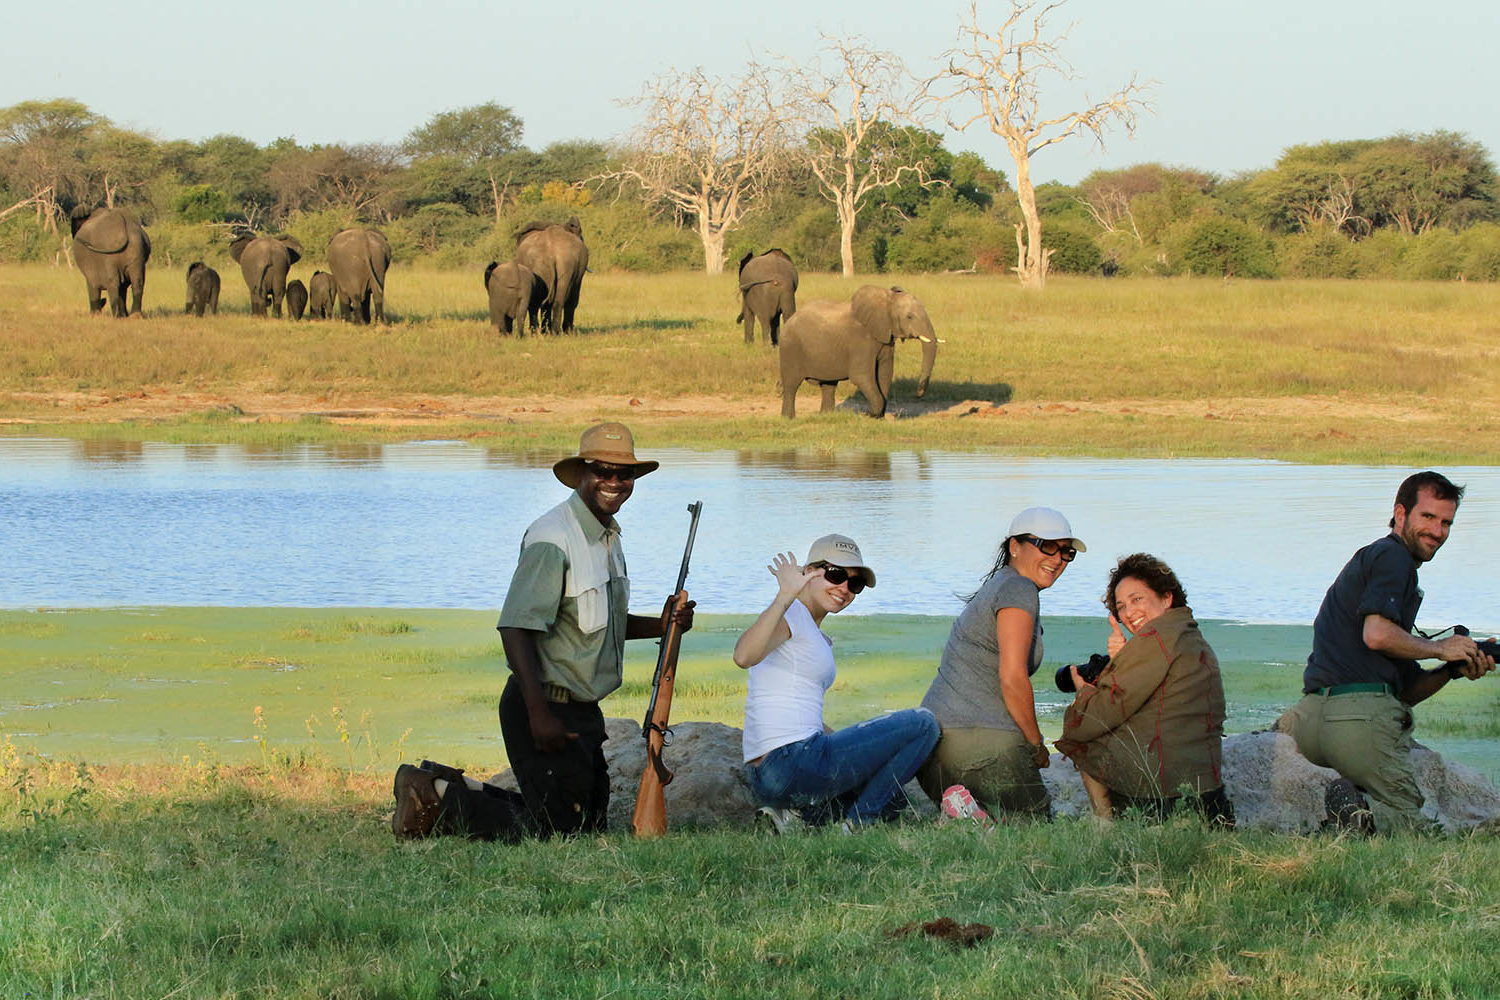 bomani tented lodge hwange-national-park-lodges-zimbabwe-accommodation-tailored-experiences-walking-safaris-elephants